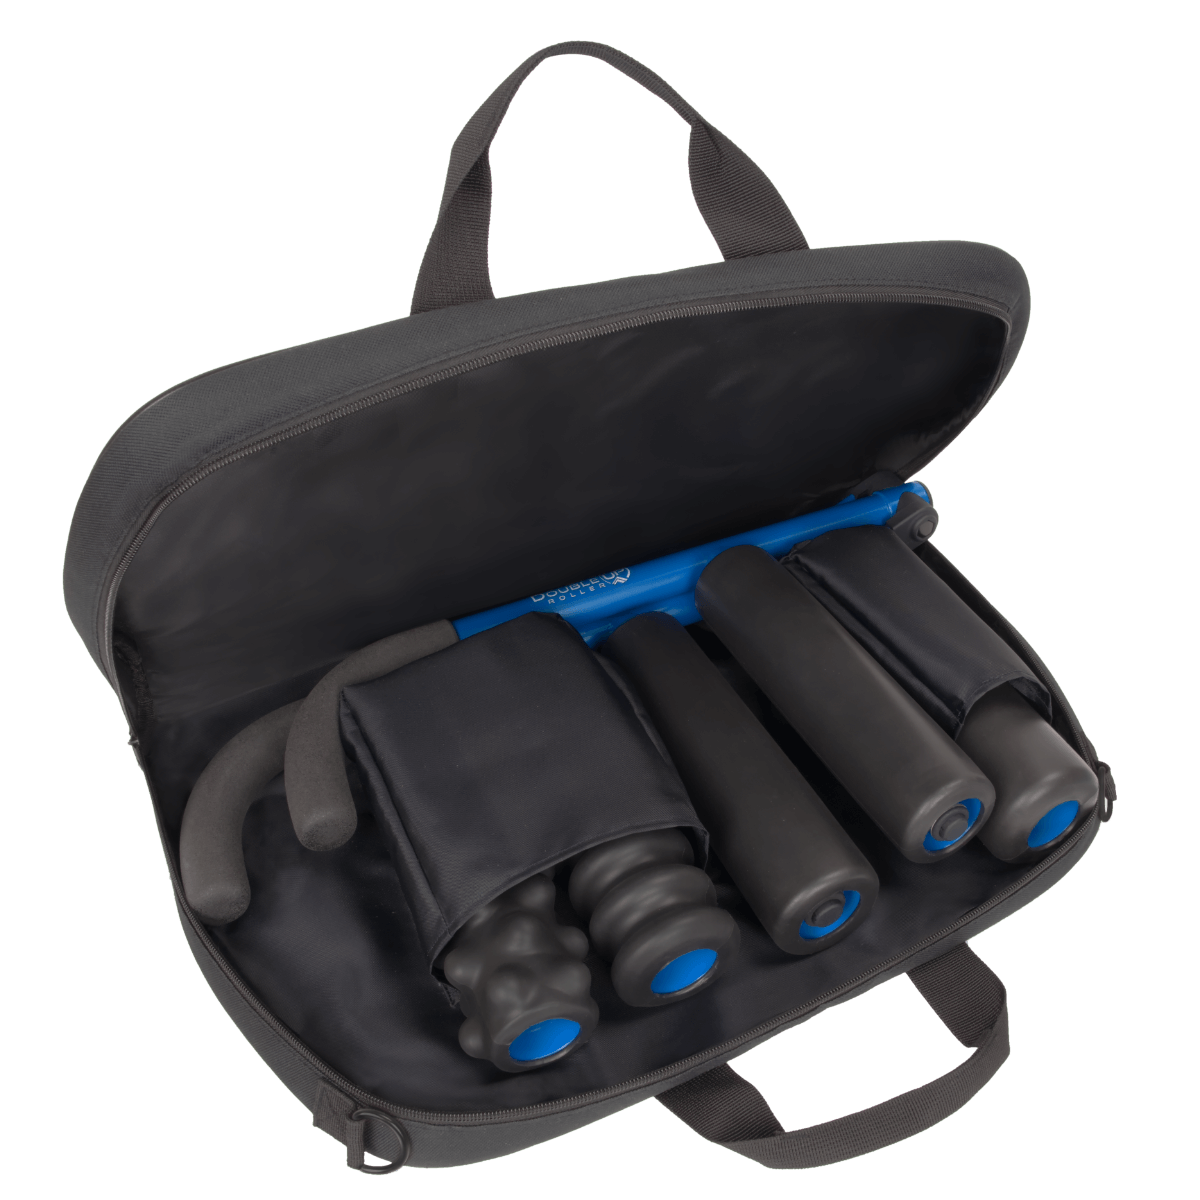 DoubleUP premium padded carrying bag inside view with pockets, frame, and rollers